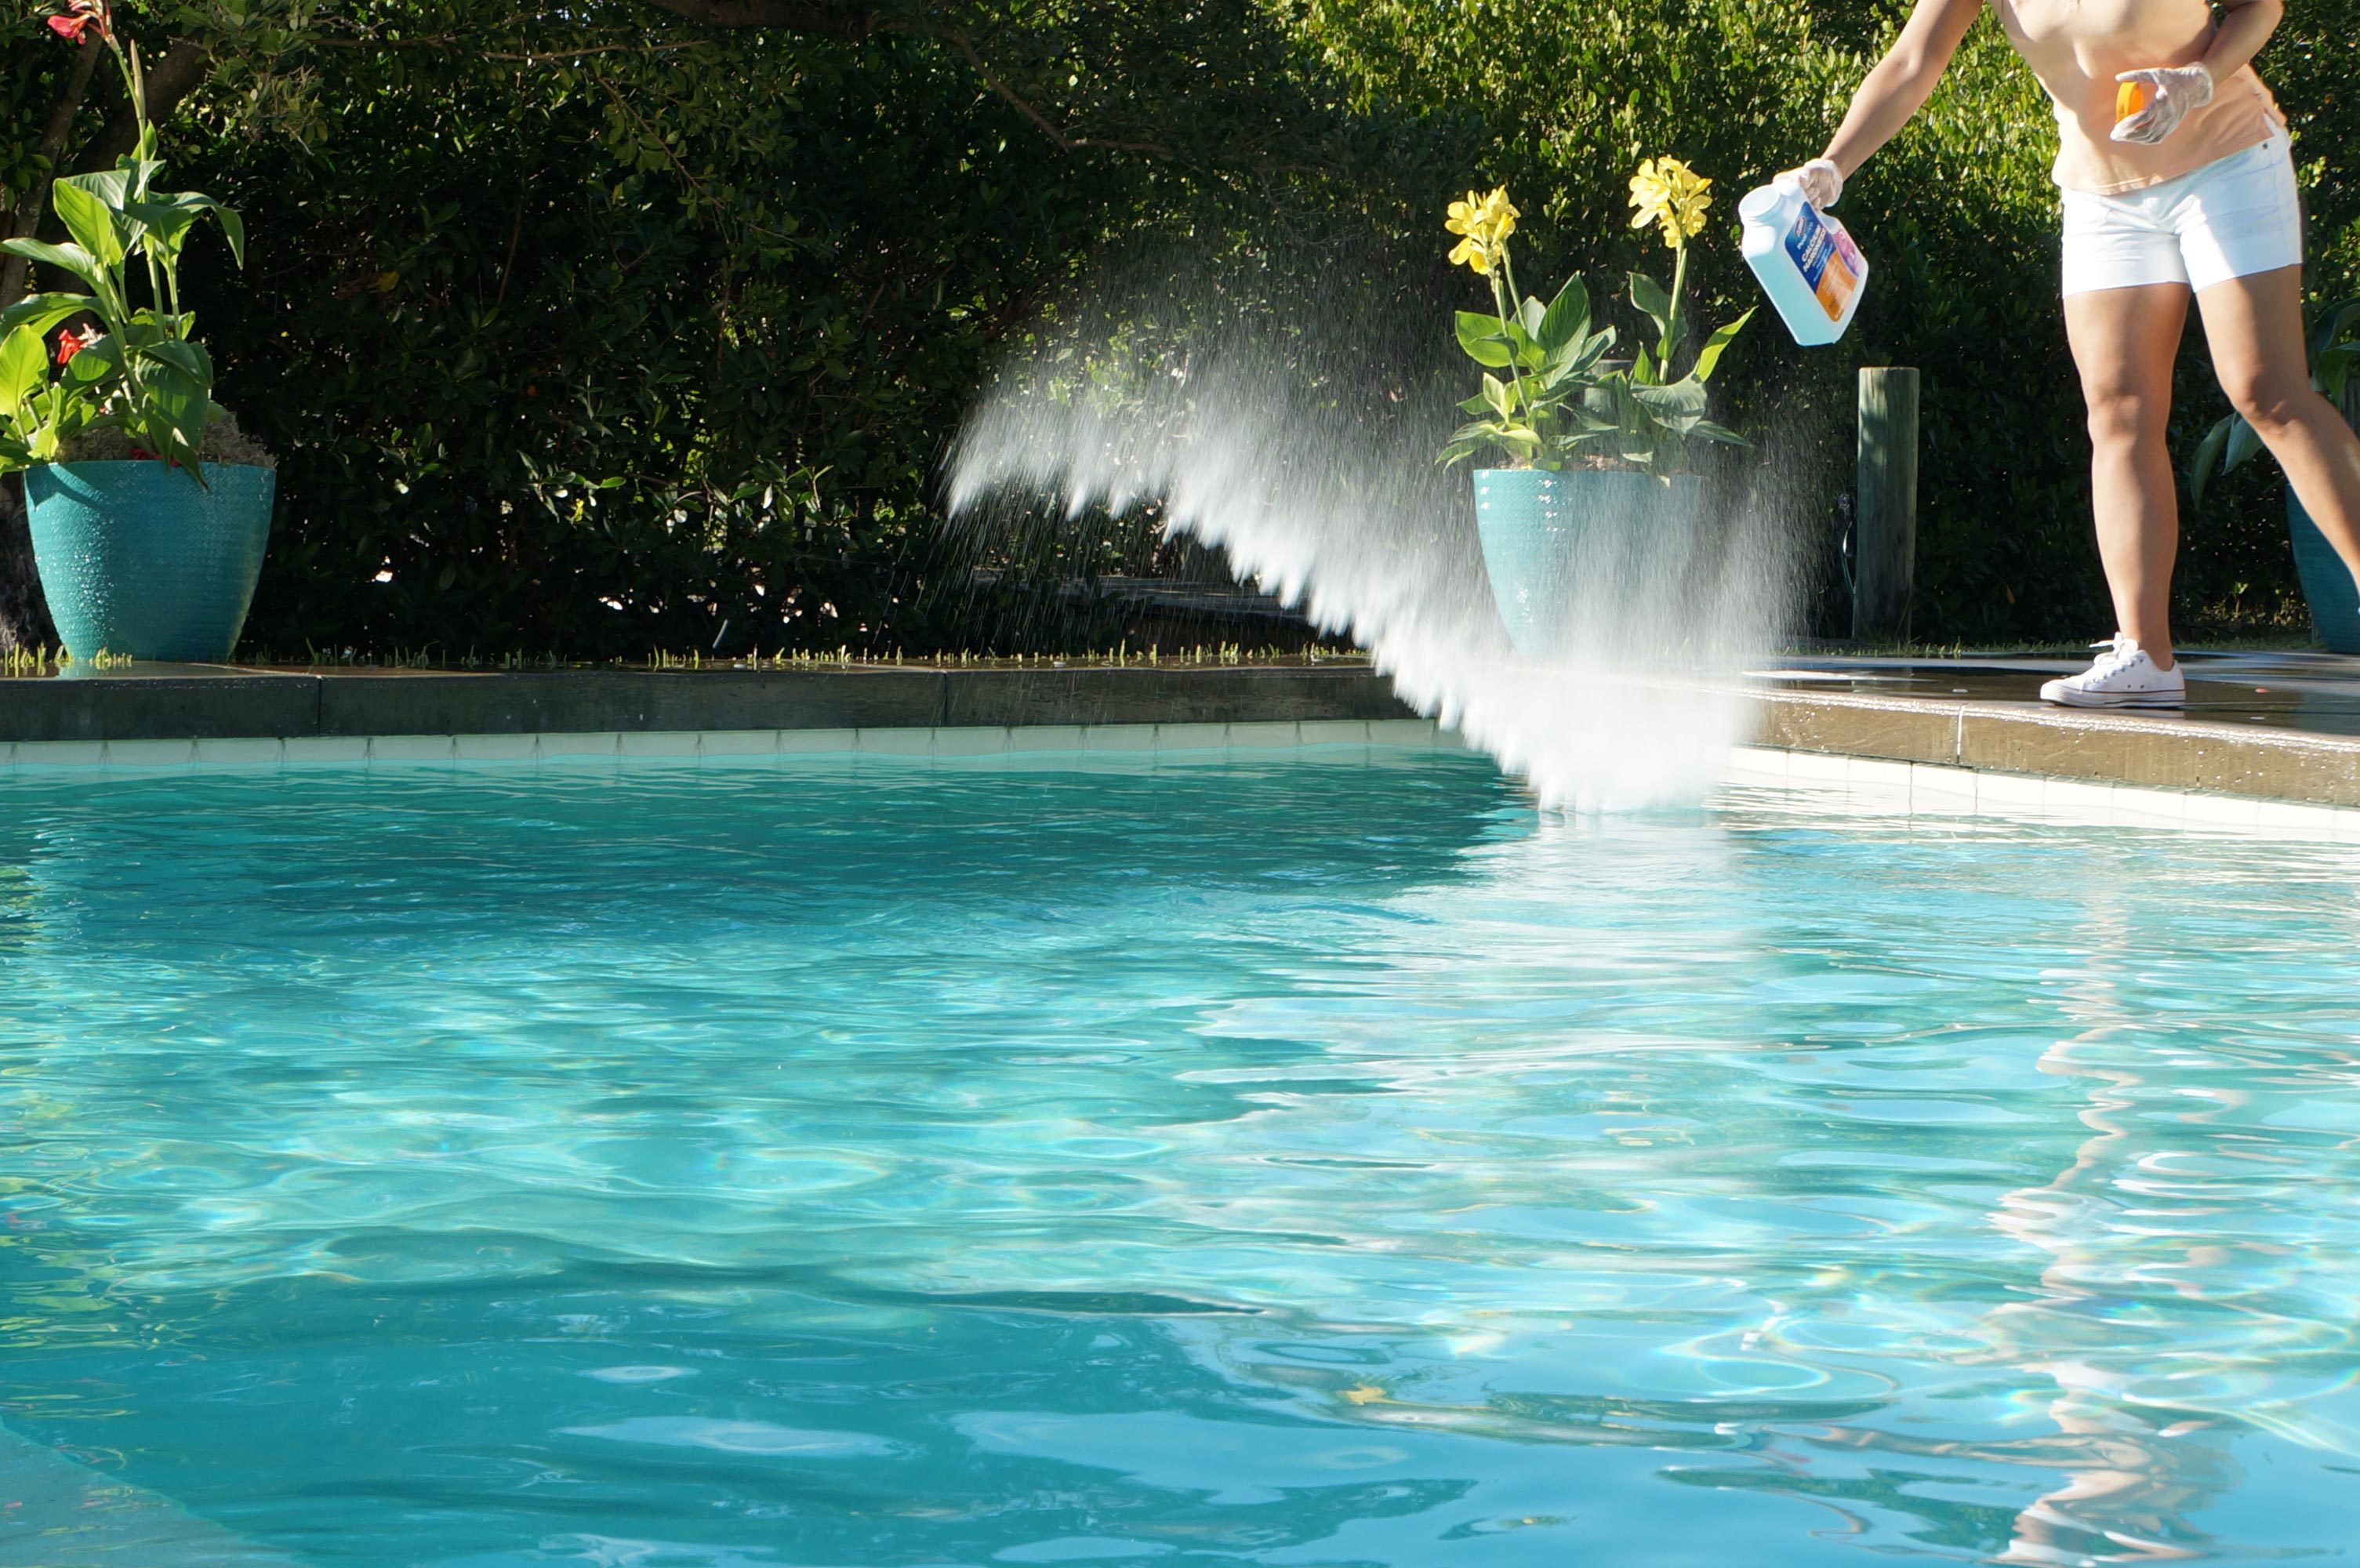 How To Softenreduce Hardness In Swimming Pool Water